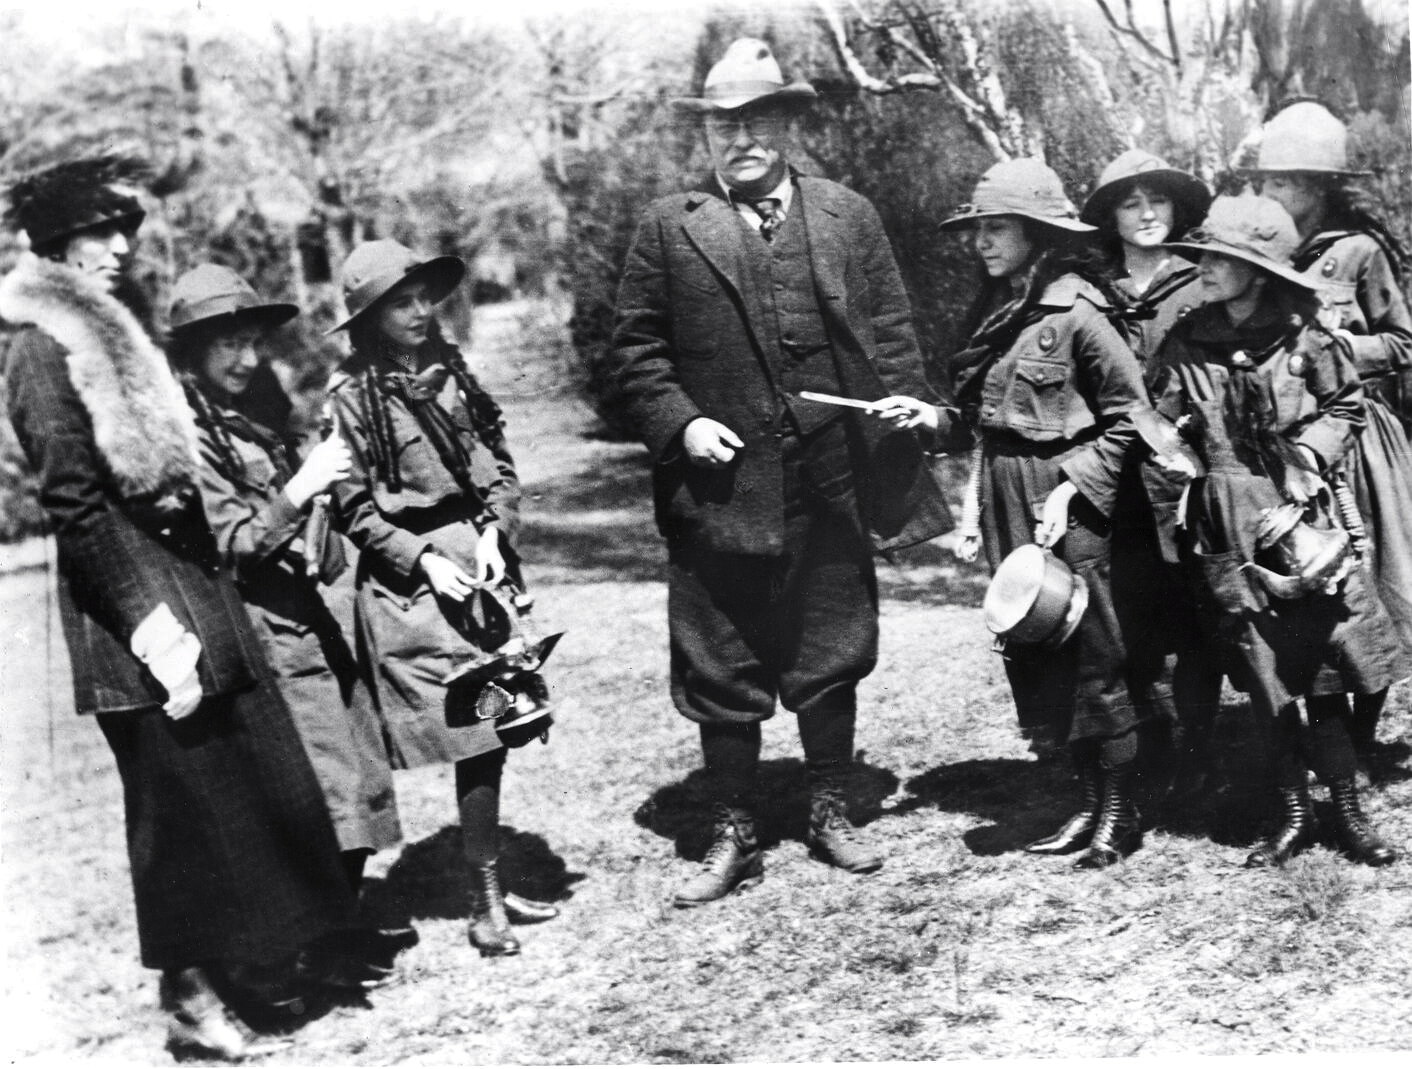 Theodore Roosevelt Quotes The Roosevelts & The Girl Scouts My Two Research Worlds  Stacy A